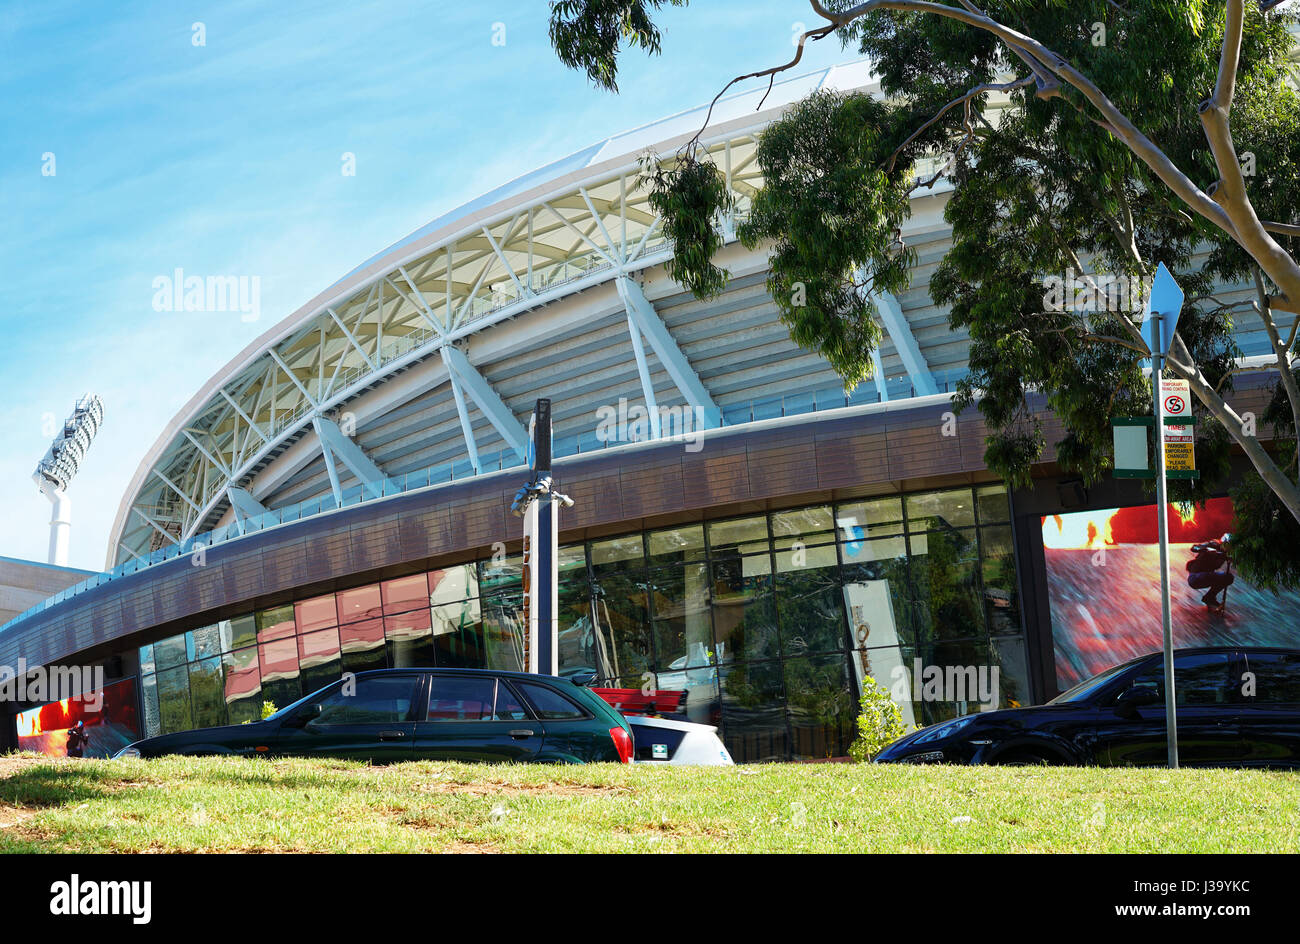 Close up of the Adelaide Oval Stadium, home of the South Australian Cricket Association, situated in the pa - Stock Image